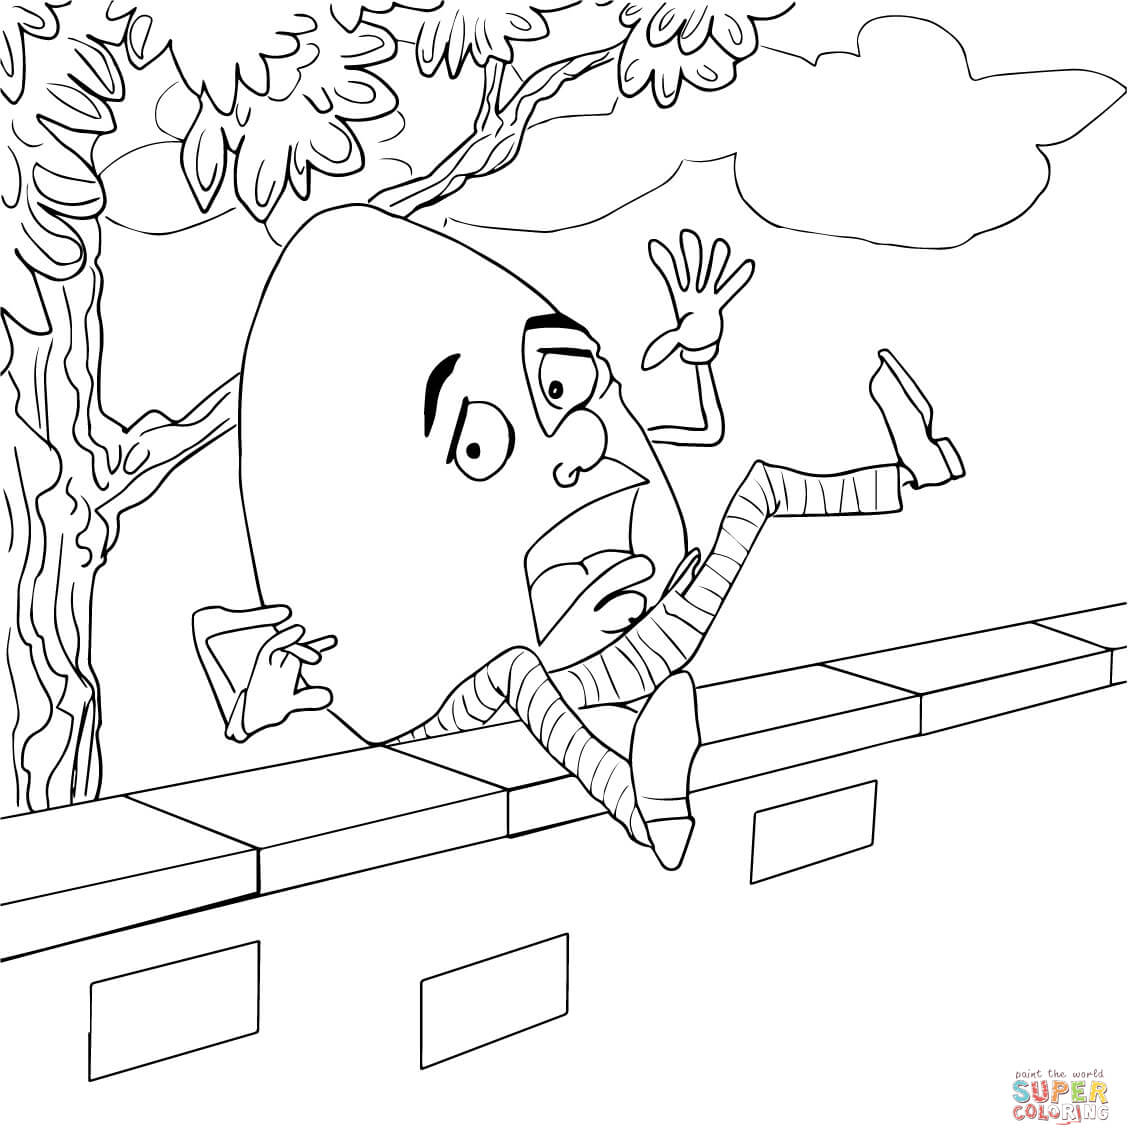 Humpty Dumpty Fell Off The Wall Coloring Page | Free Printable - Printable Humpty Dumpty Puzzle